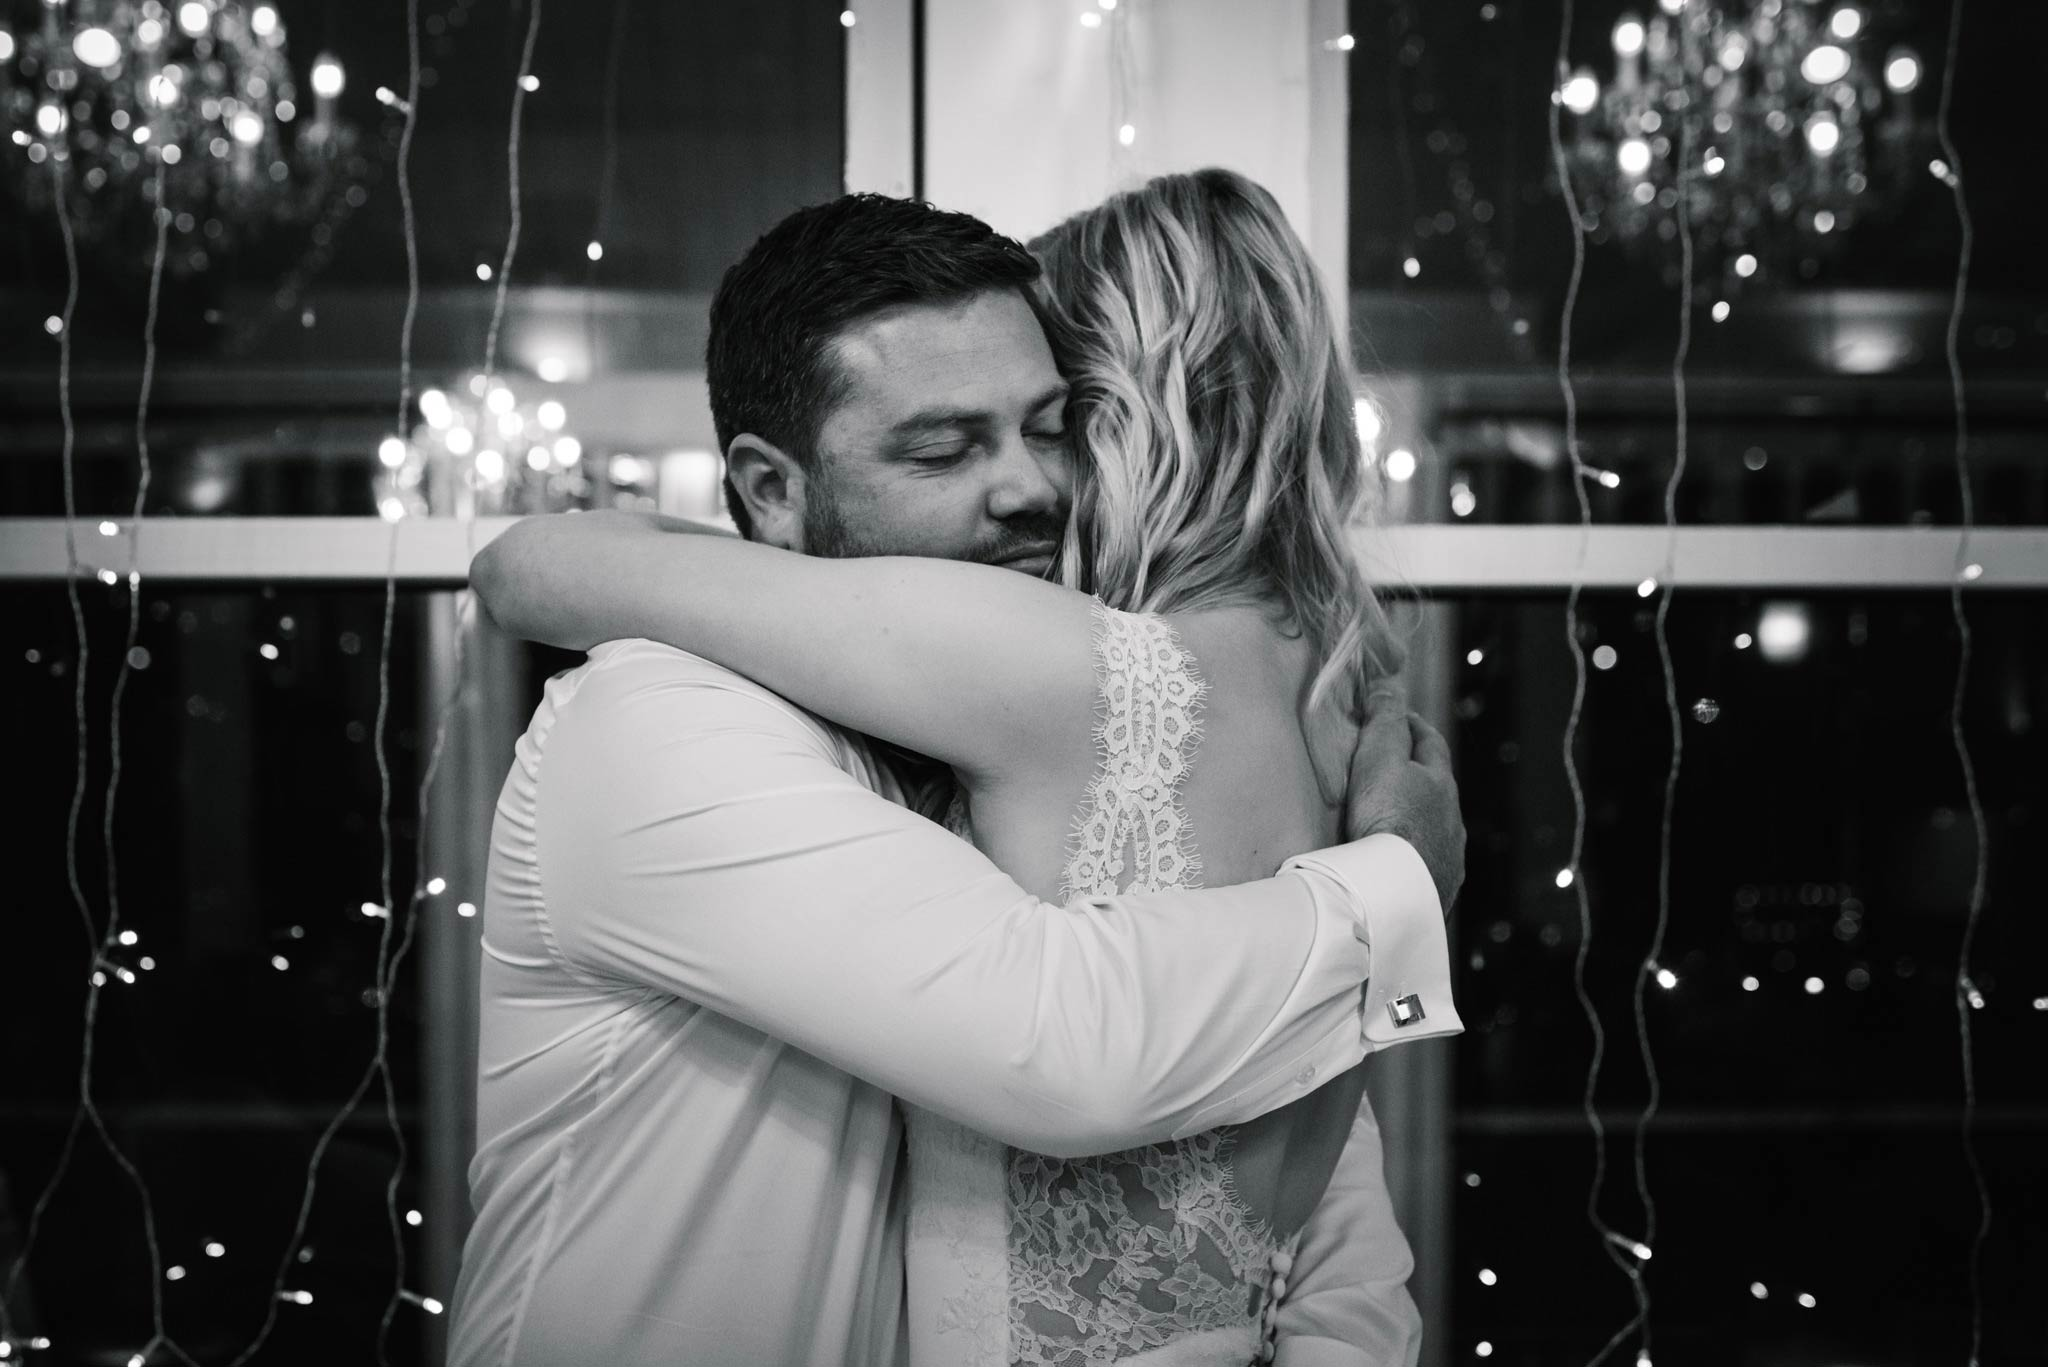 Bride and groom embrace after groom's speech